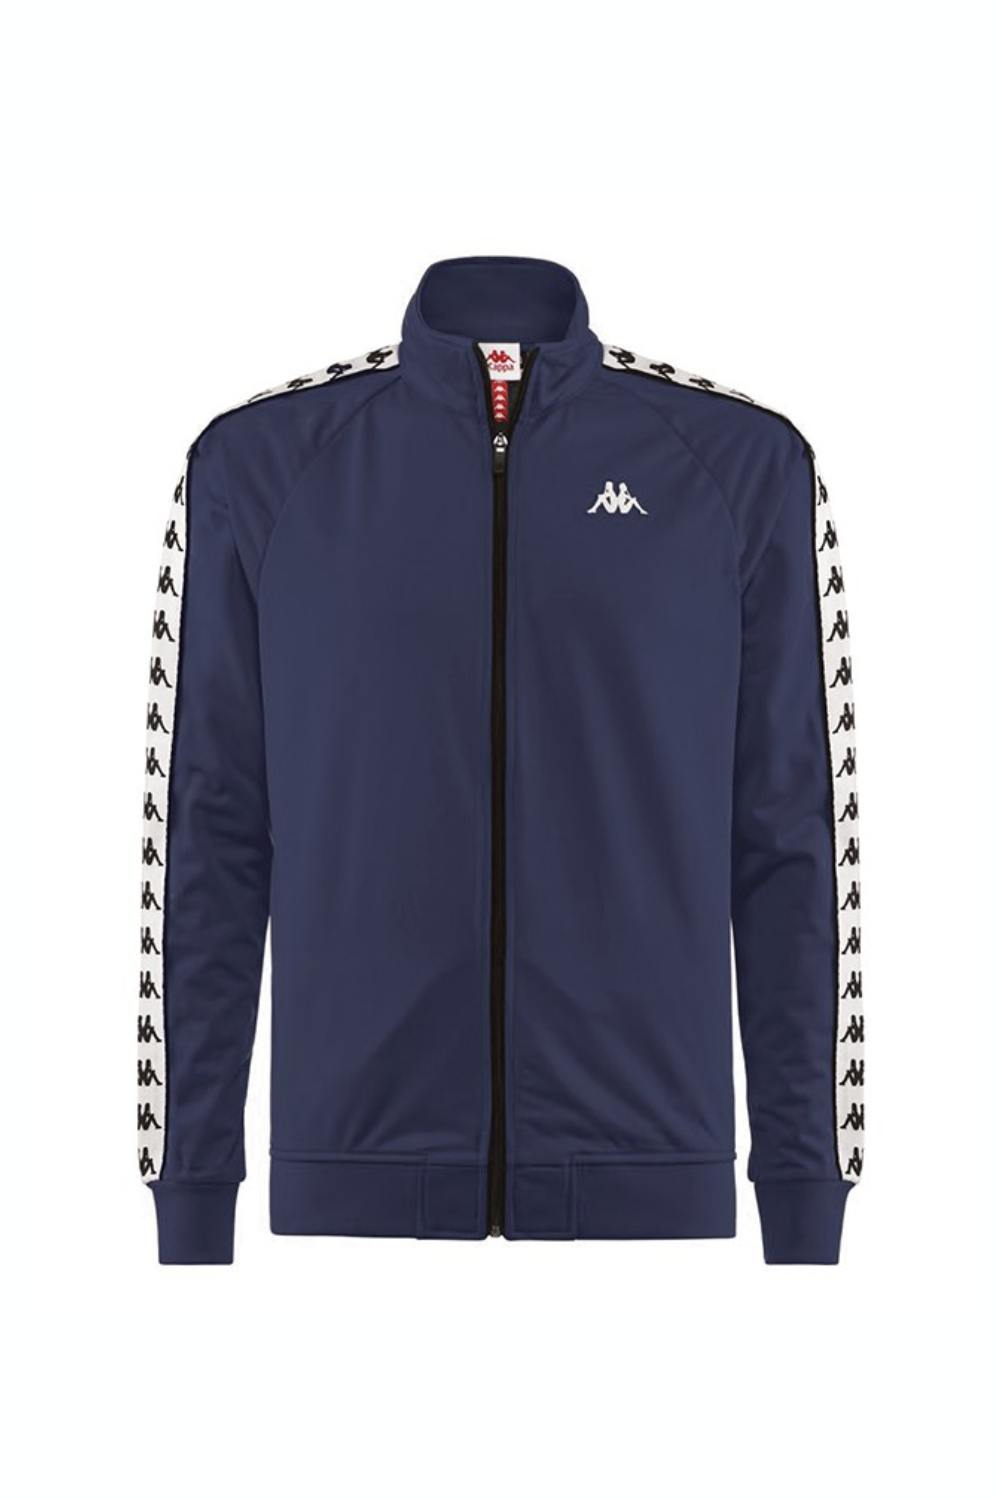 Kappa Banda Anniston Track Top - Blue/White/Black